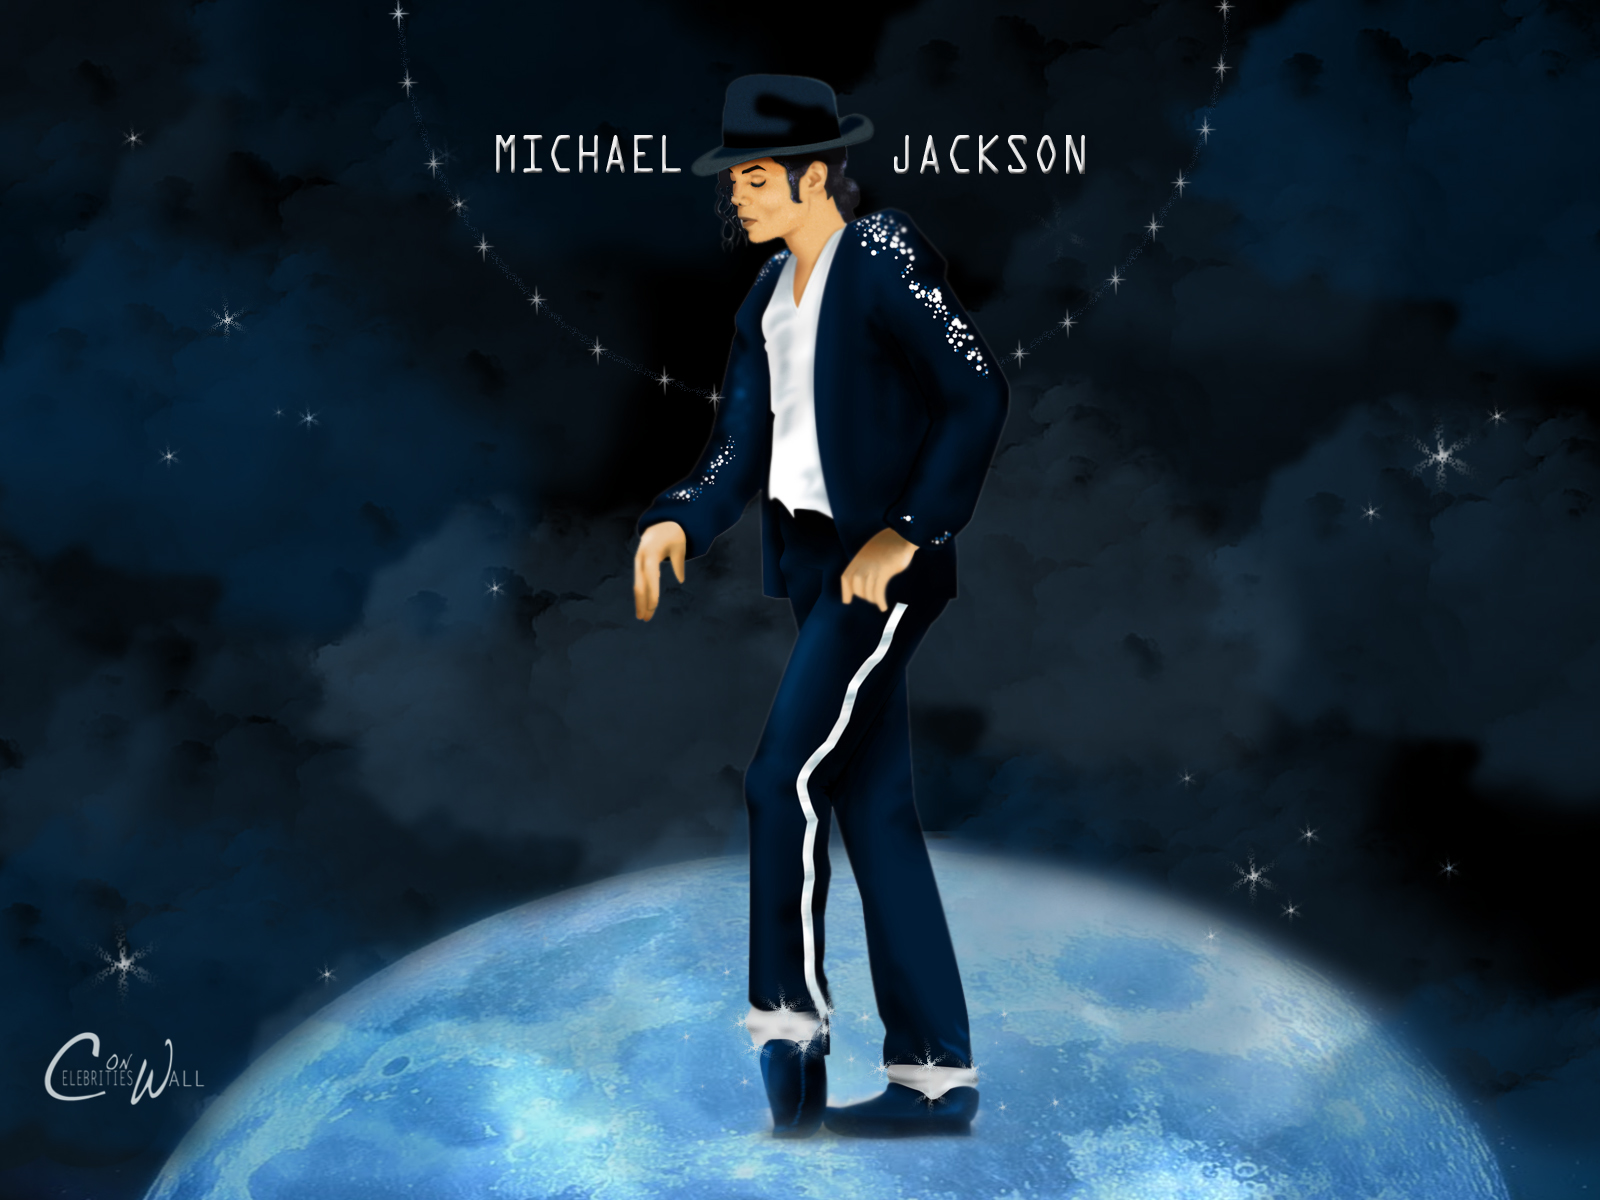 michael jackson wallpaper michael jackson wallpaper